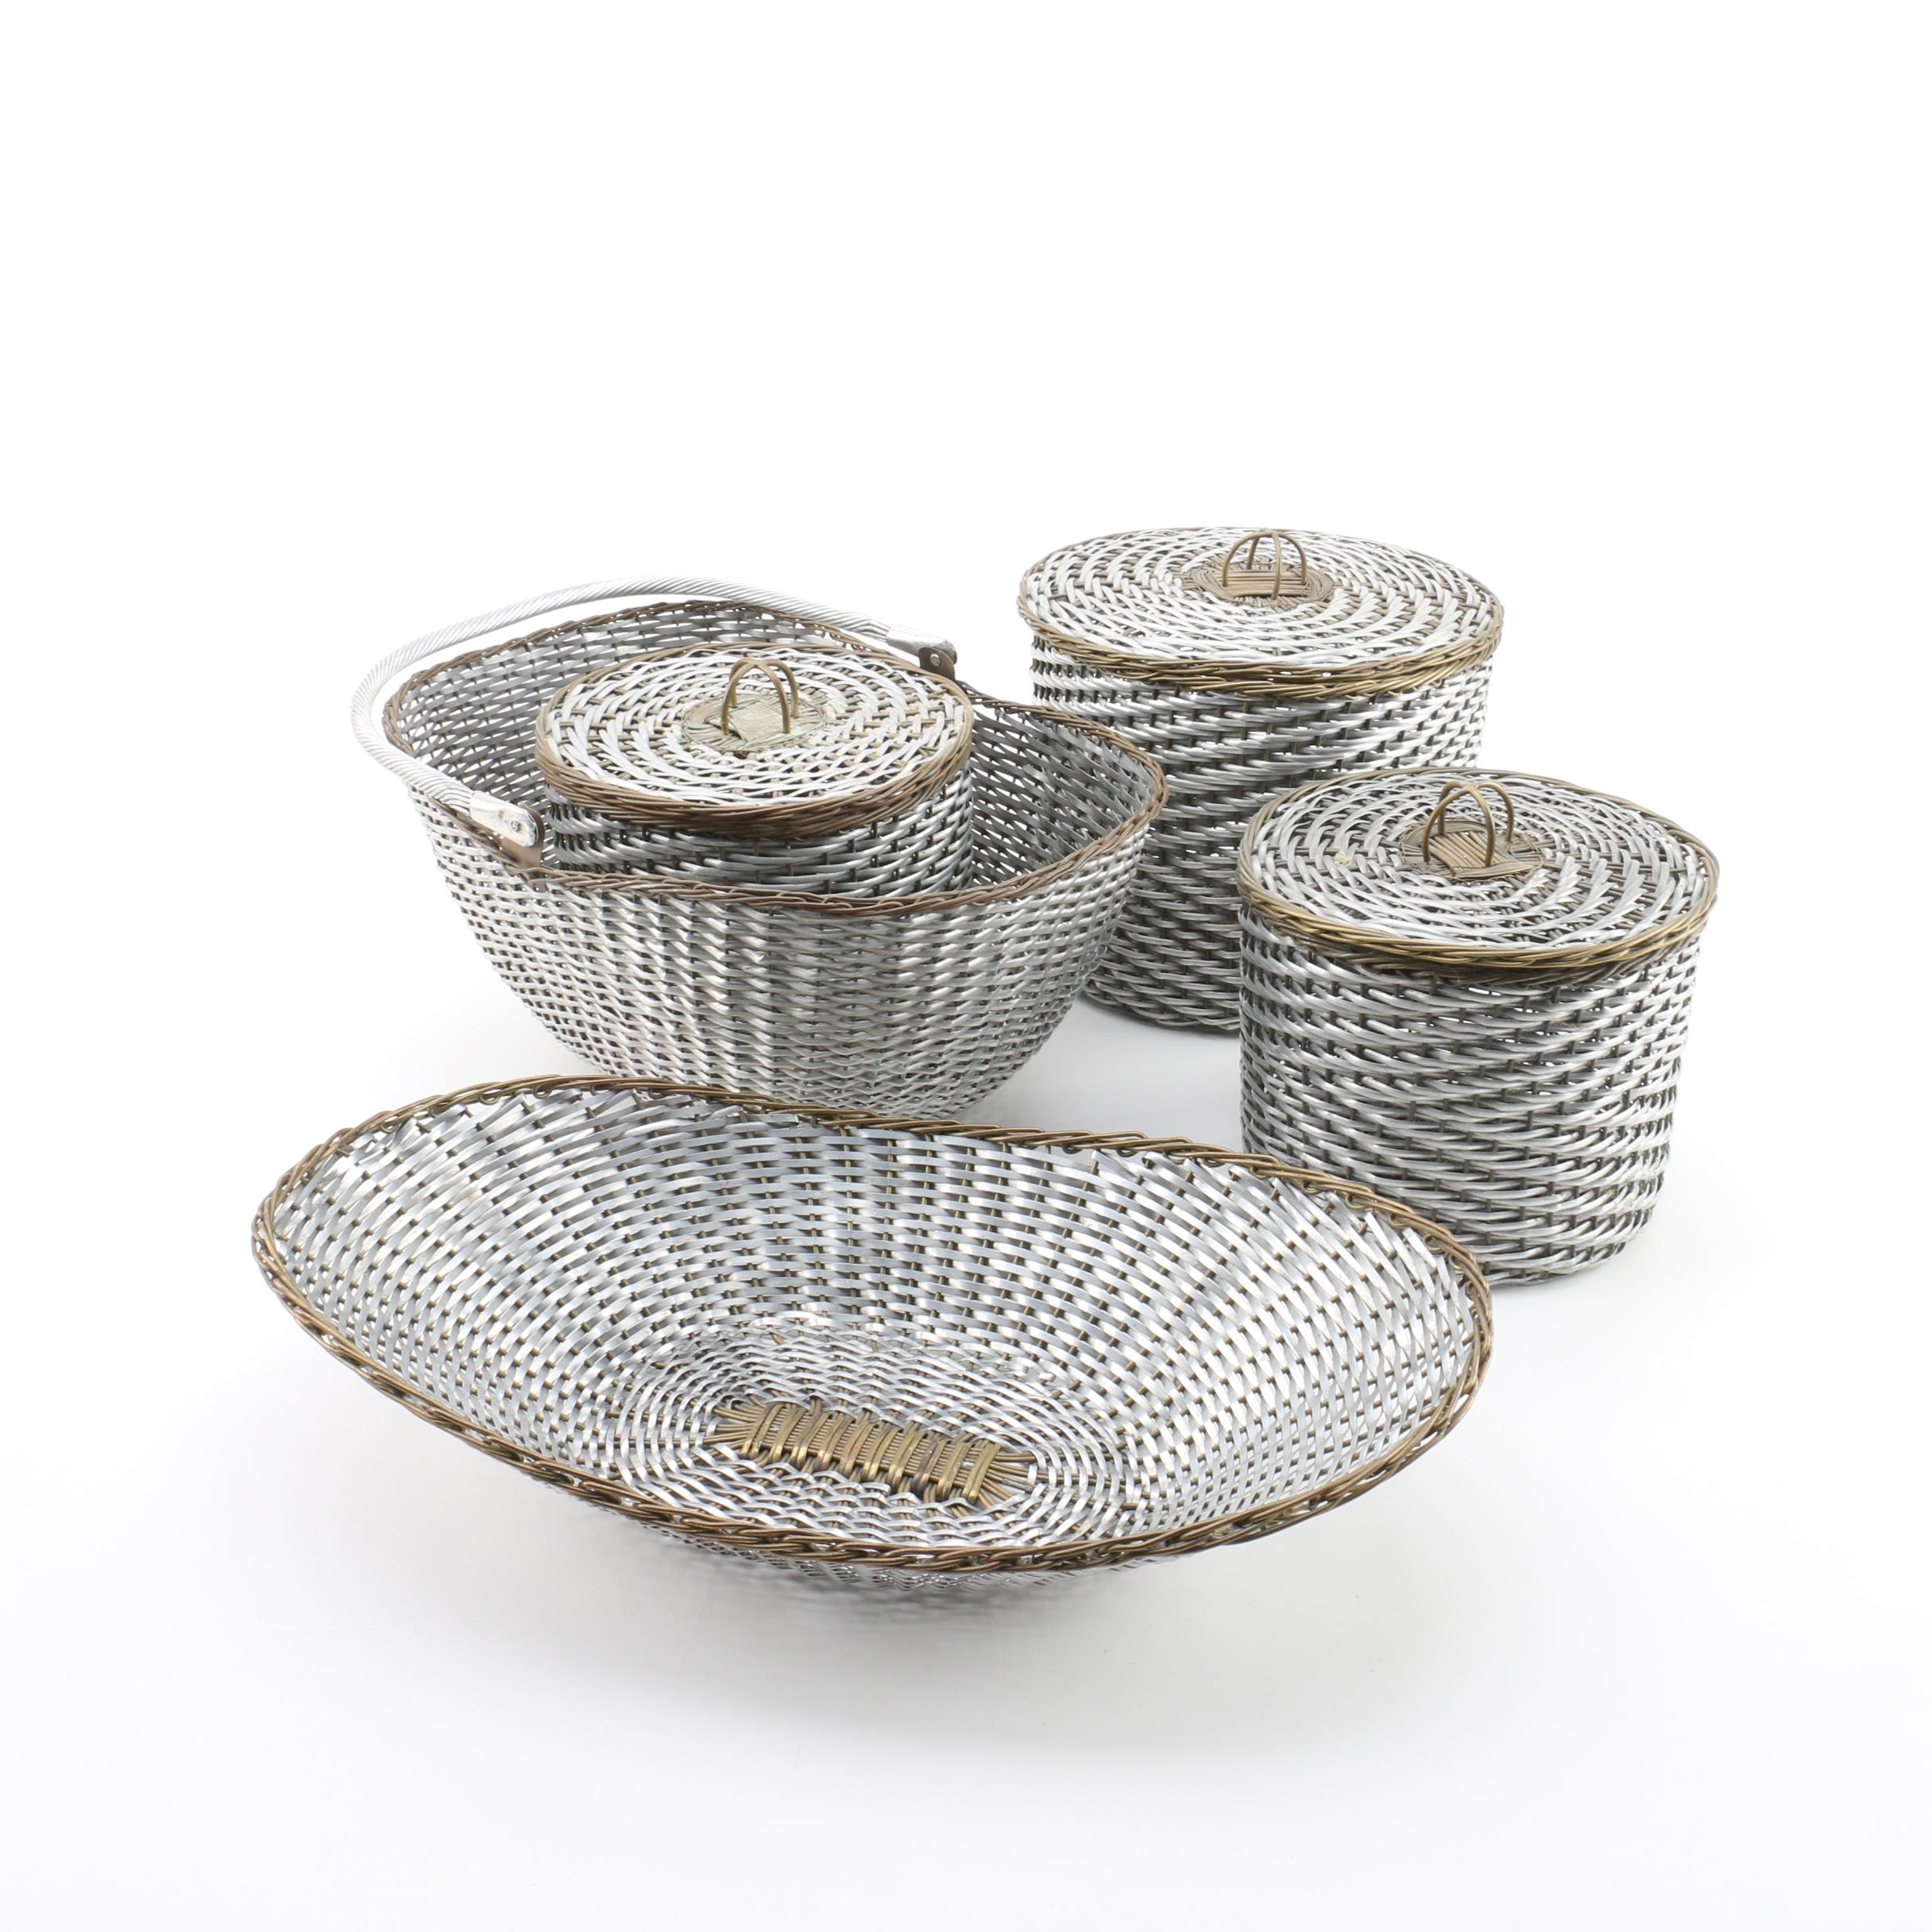 Woven Wicker Silver and Gold Baskets with Lids and Handles